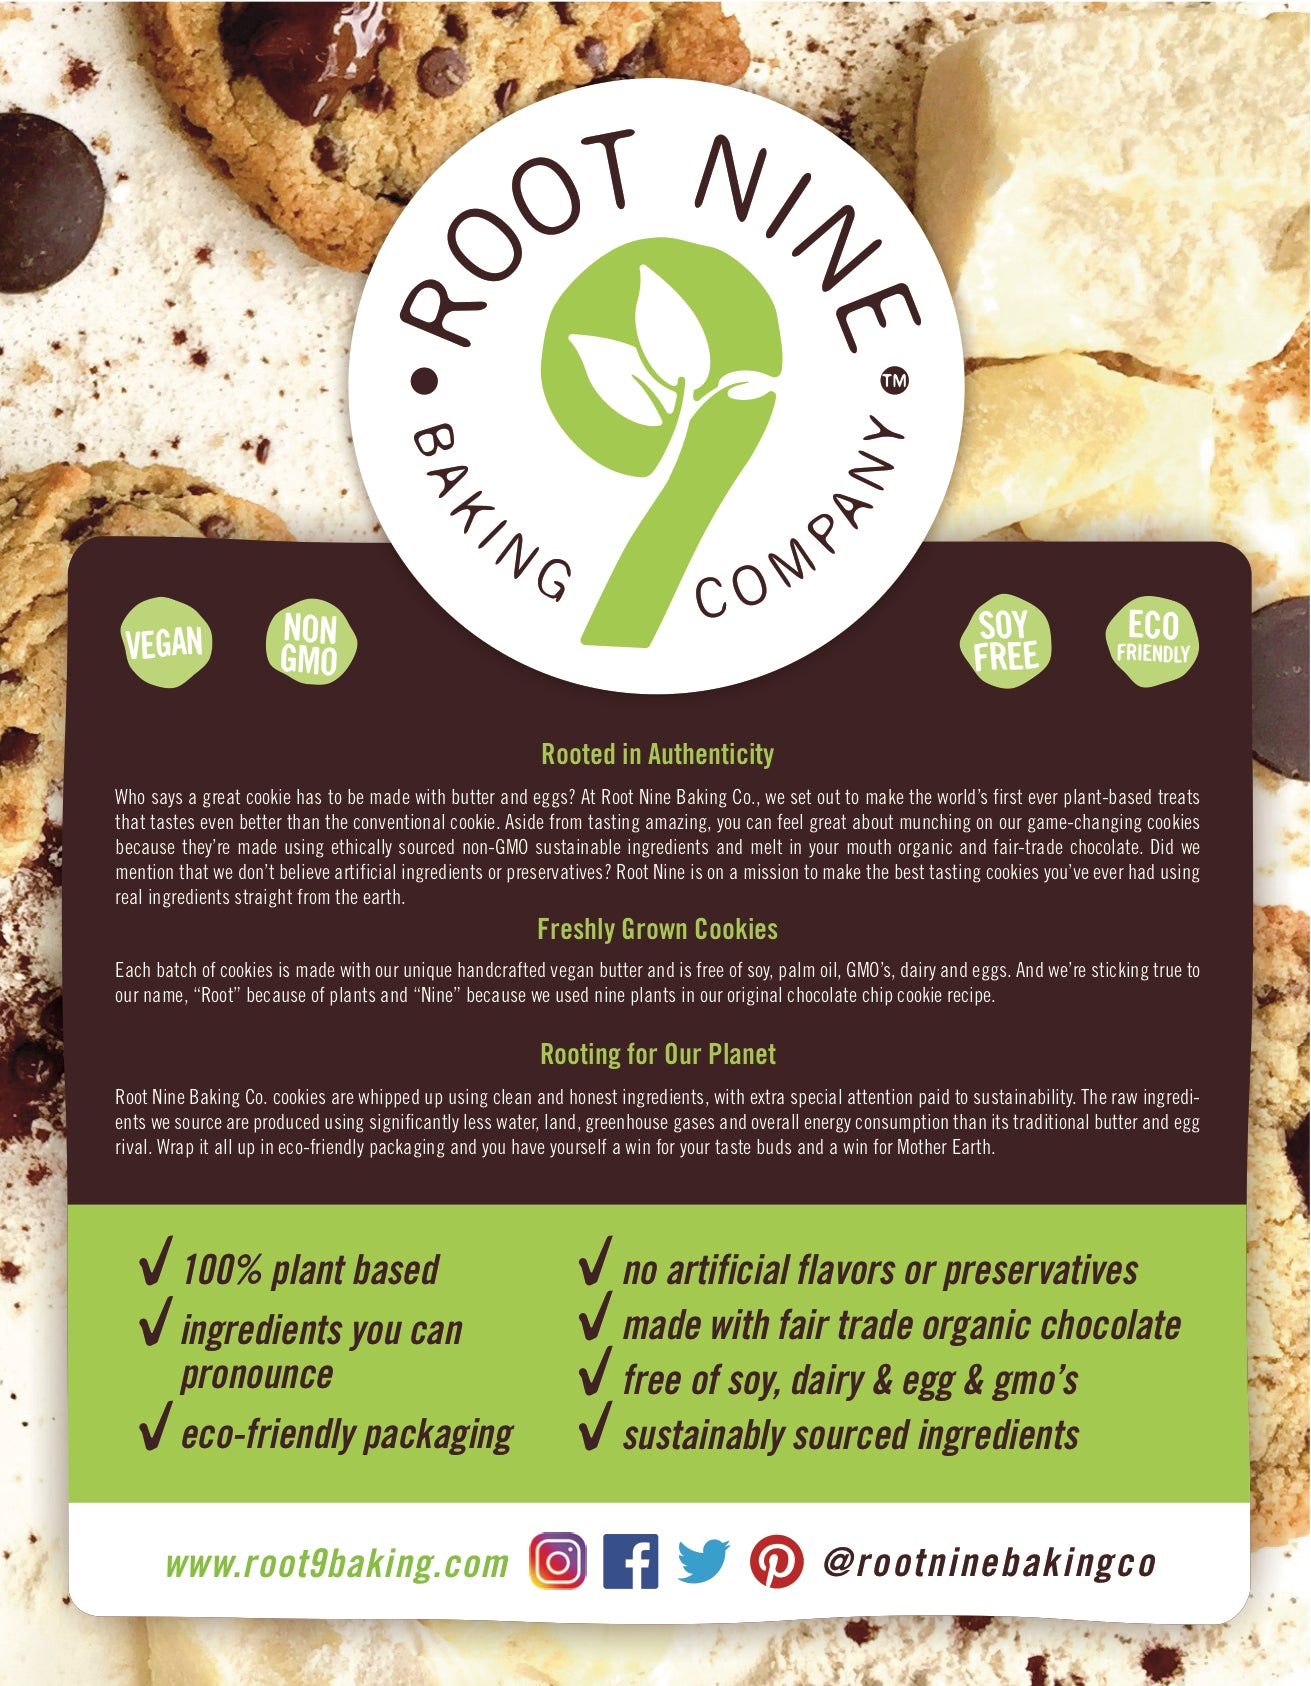 Our Mission – Root 9 Baking Co